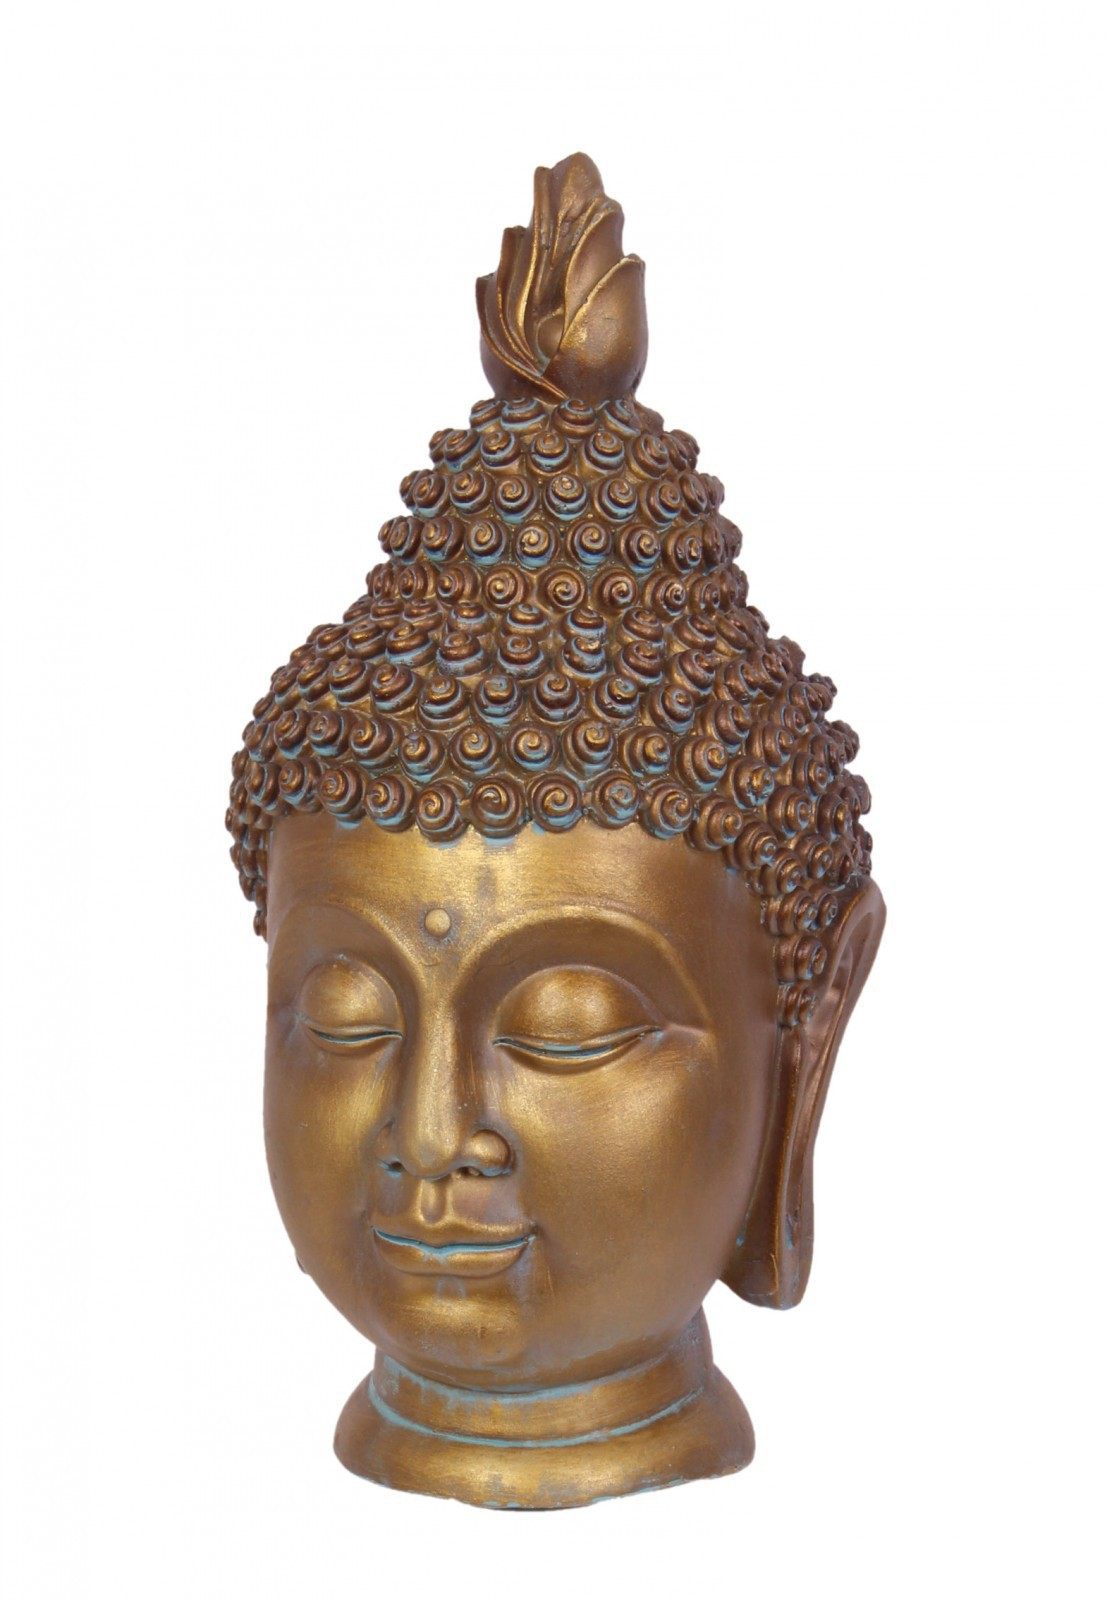 buddha kopf aus resin feng shui figur mit vielen details. Black Bedroom Furniture Sets. Home Design Ideas